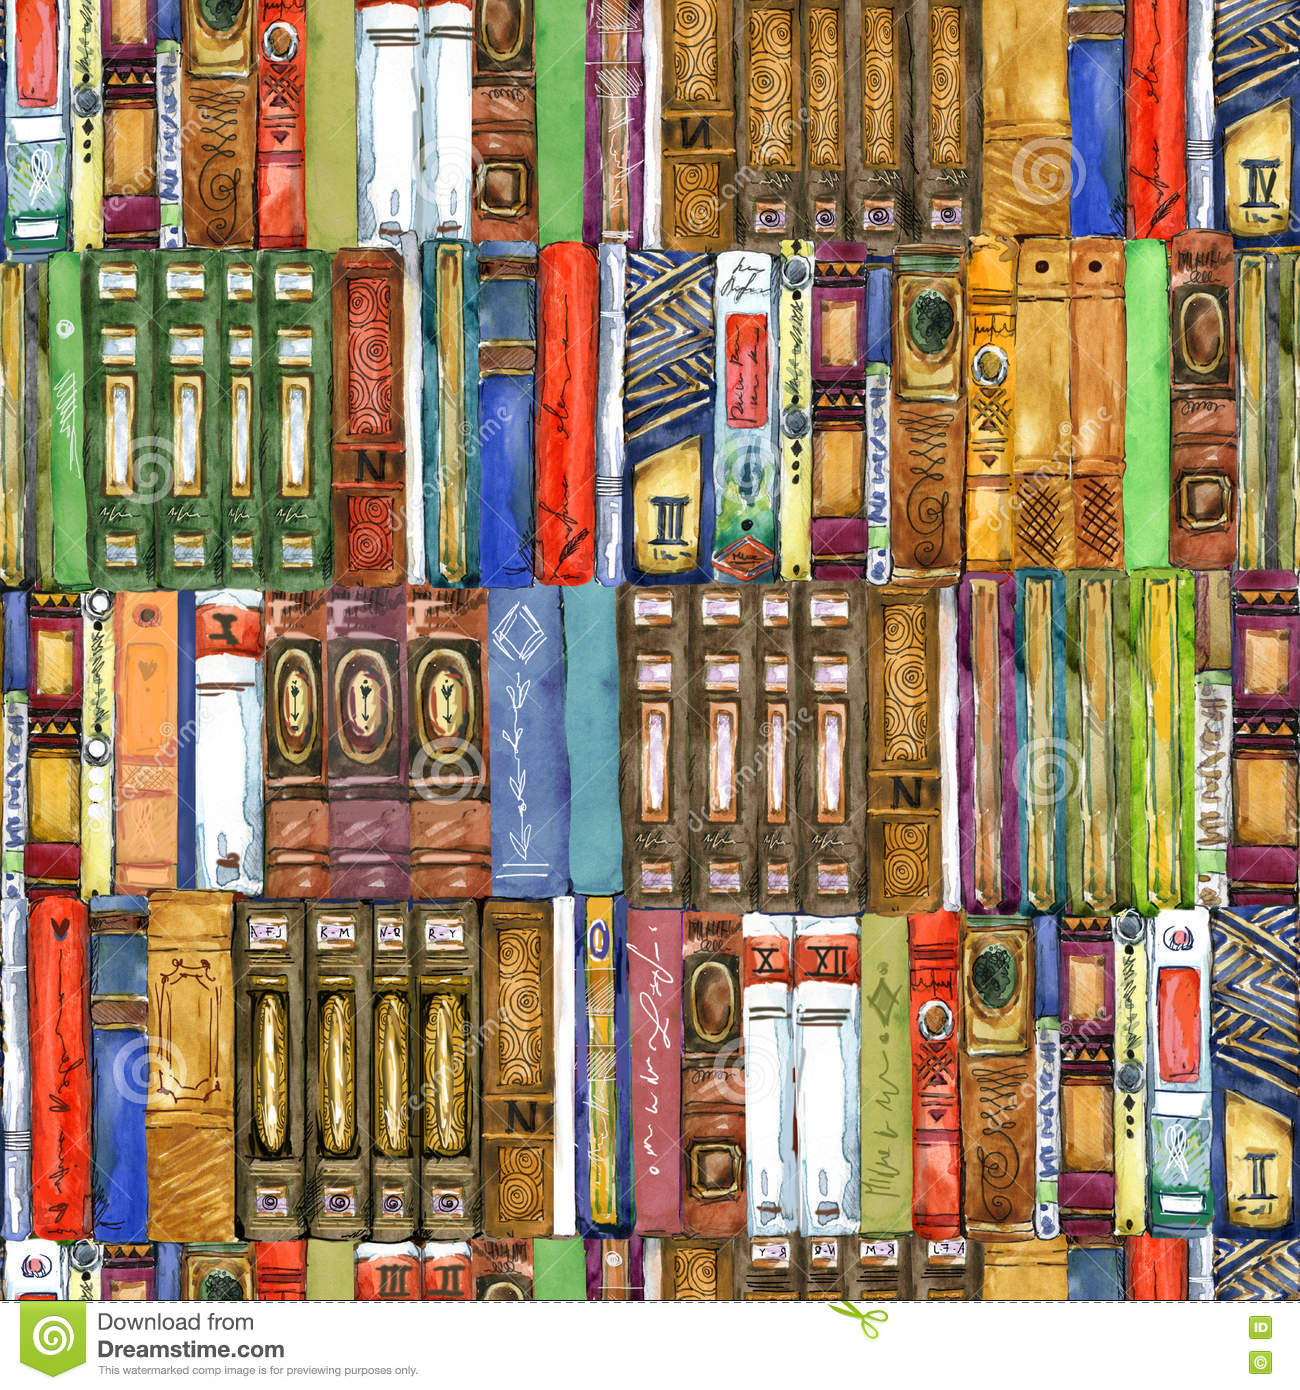 Book. Seamless pattern with books. Book watercolor illustration.